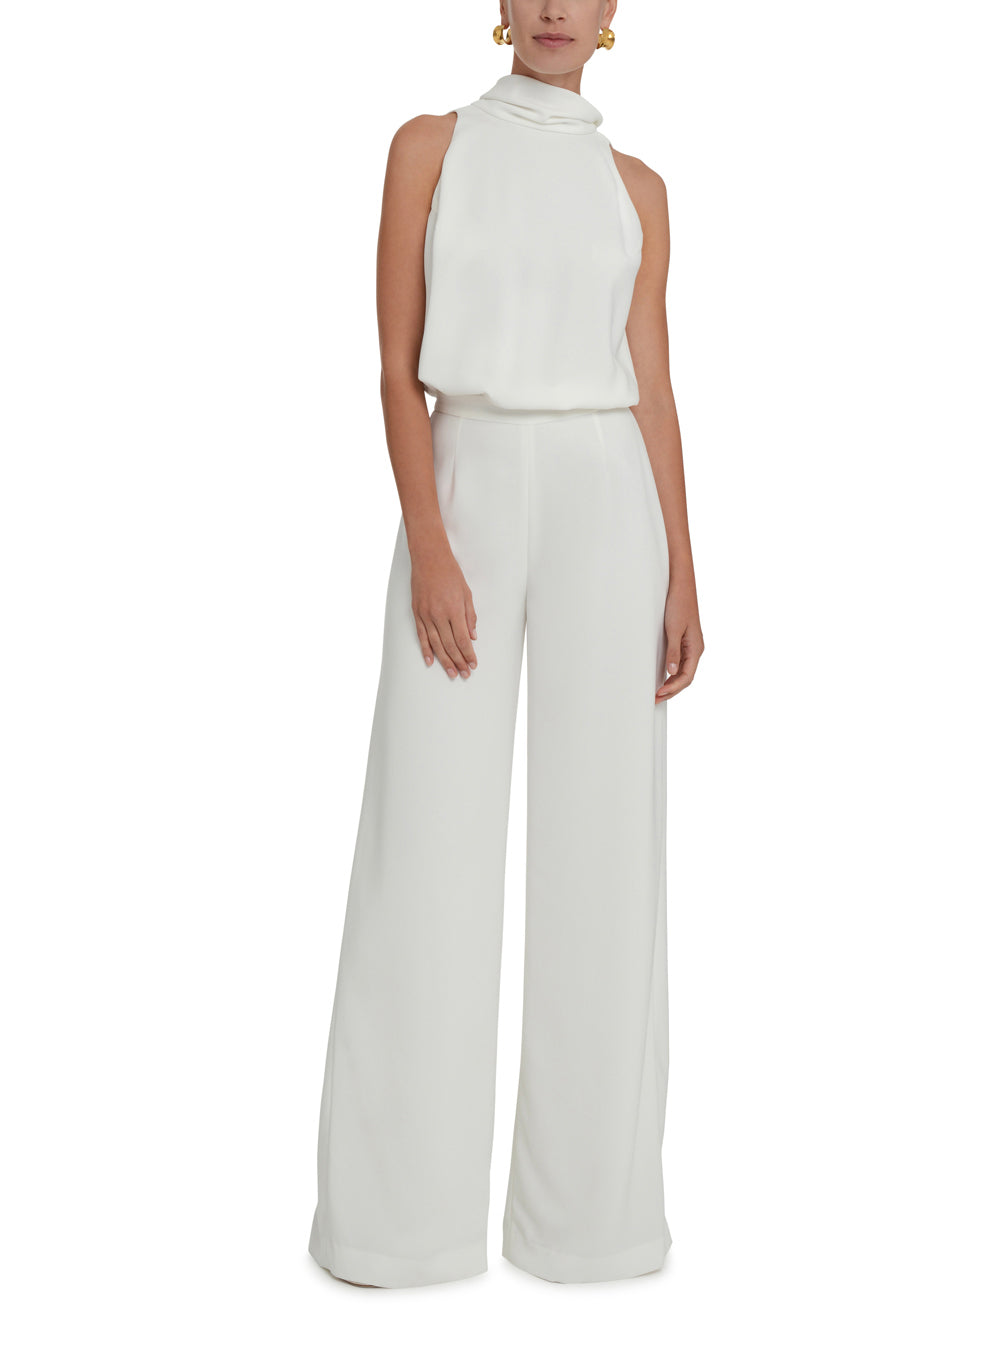 Load image into Gallery viewer, STYLE 007 //  HALTER JUMPSUIT